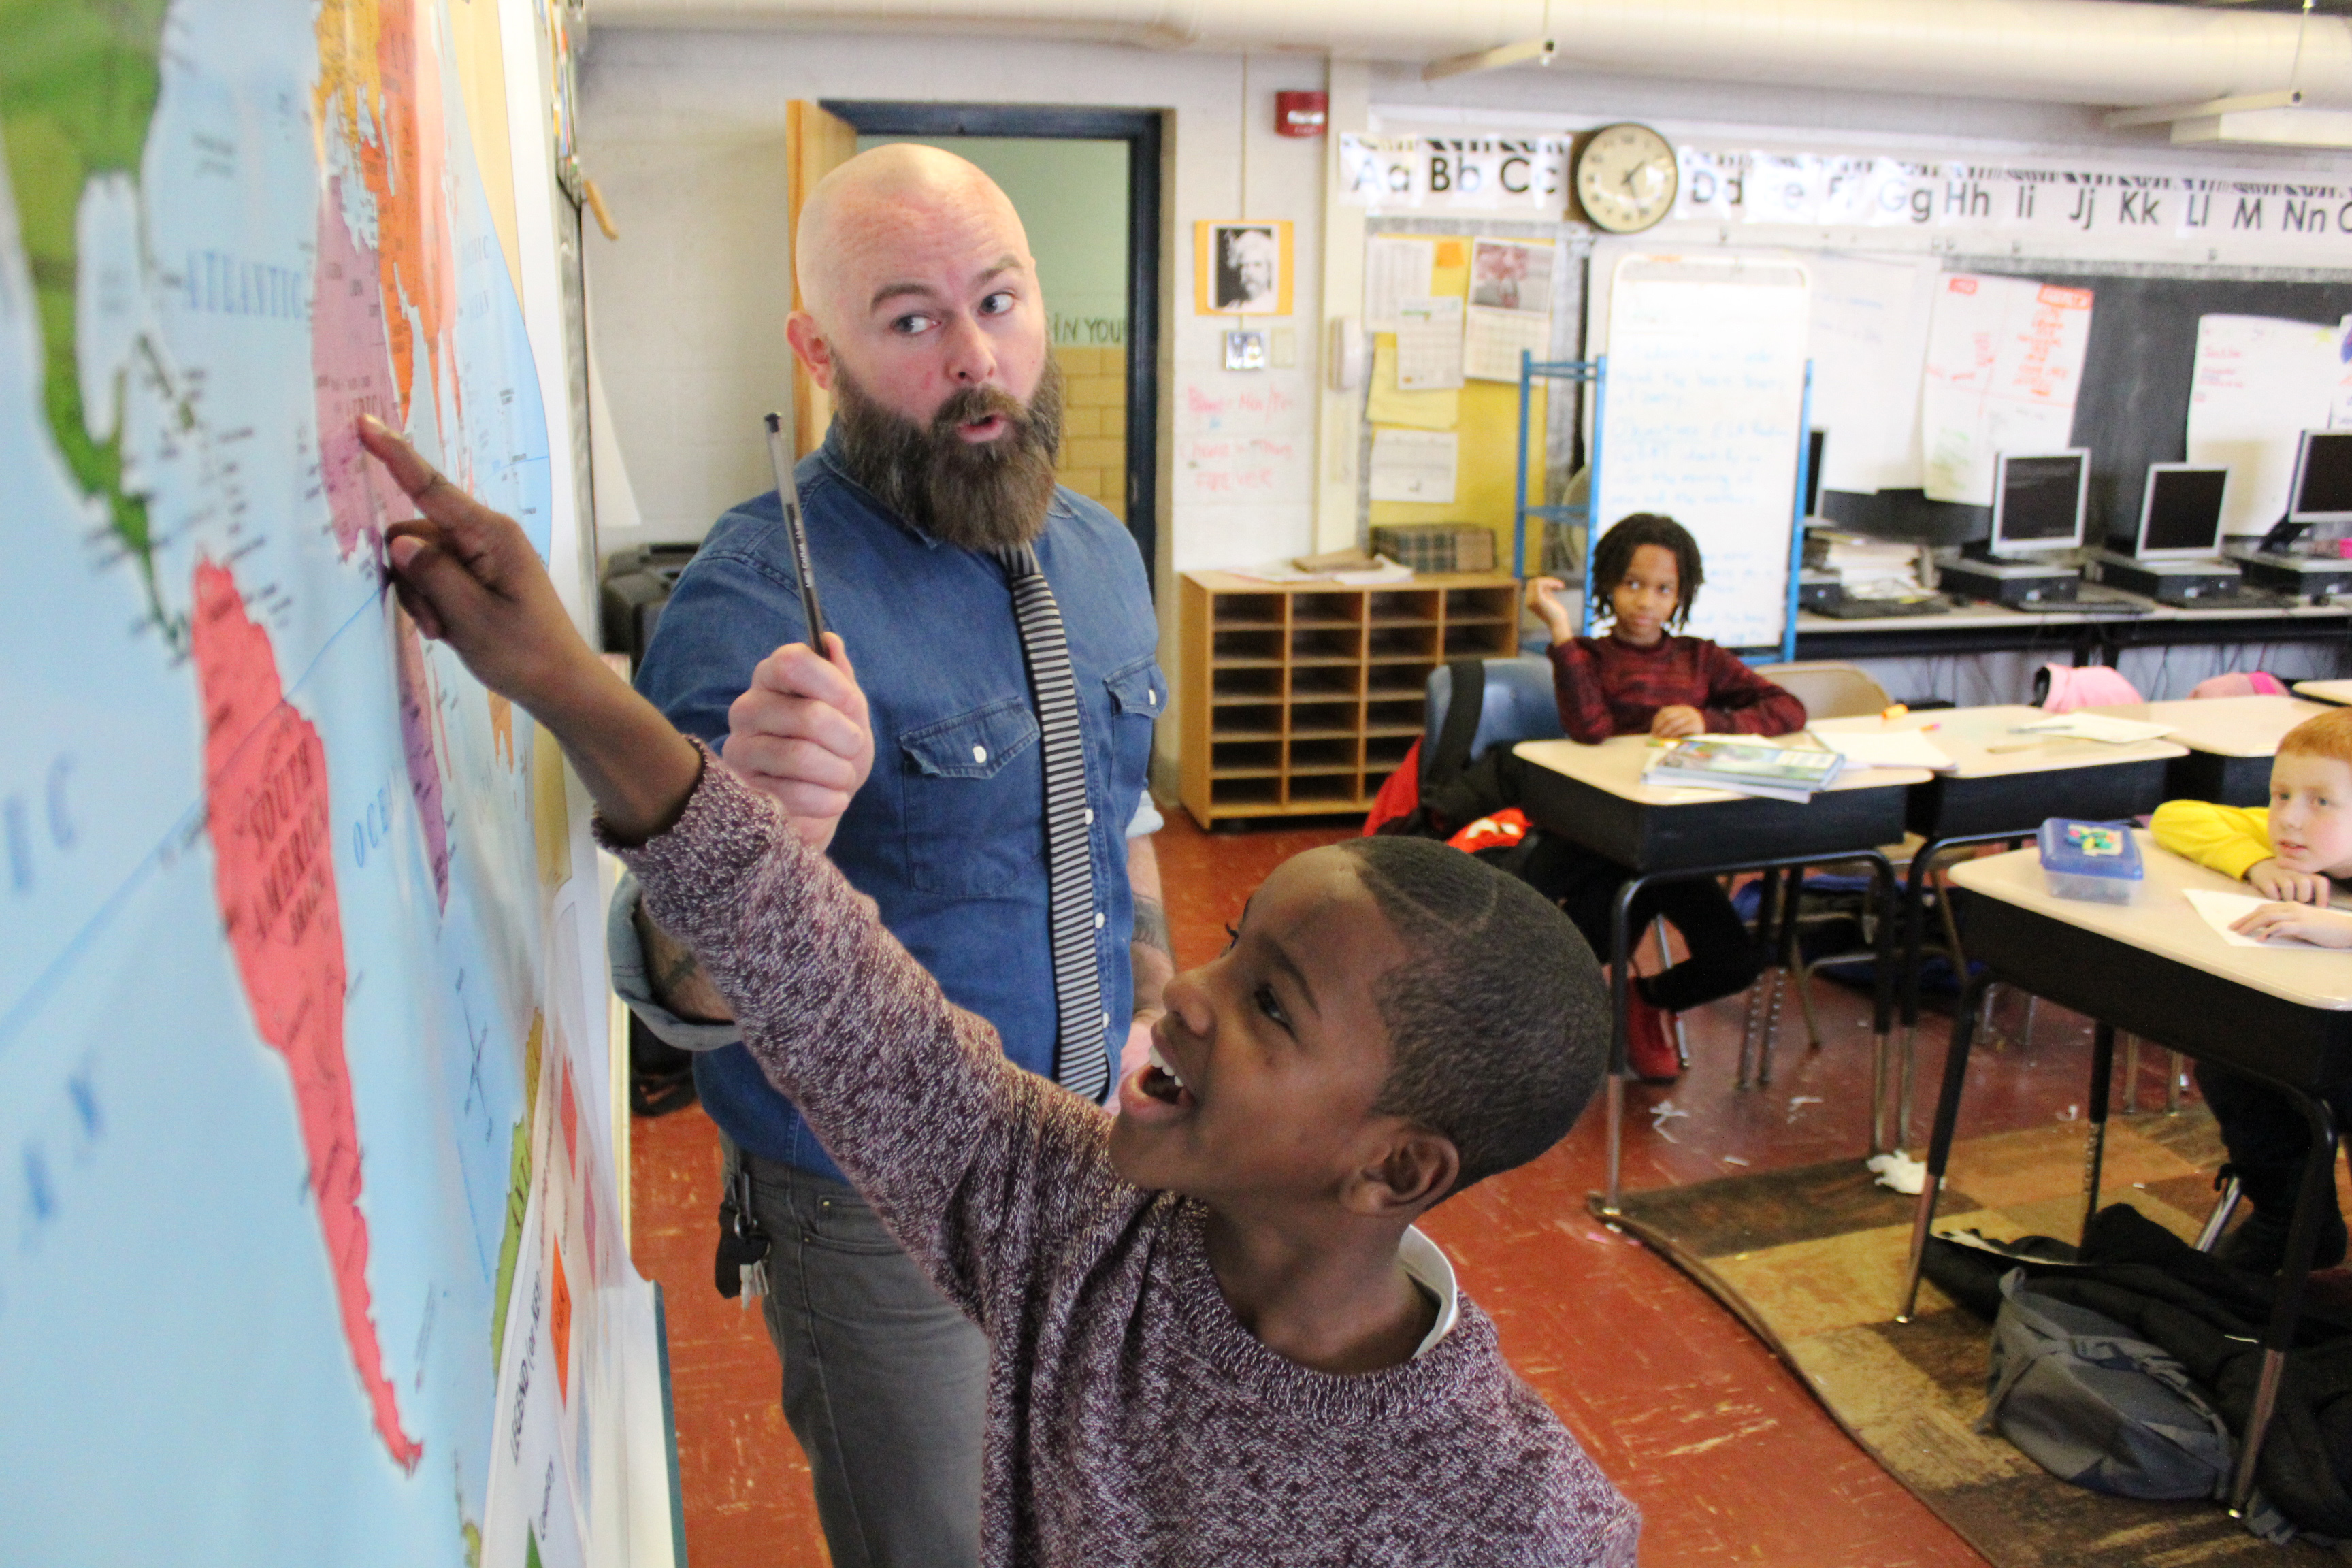 Schenectady students gain a sense of accomplishment by completing challenging assignments.